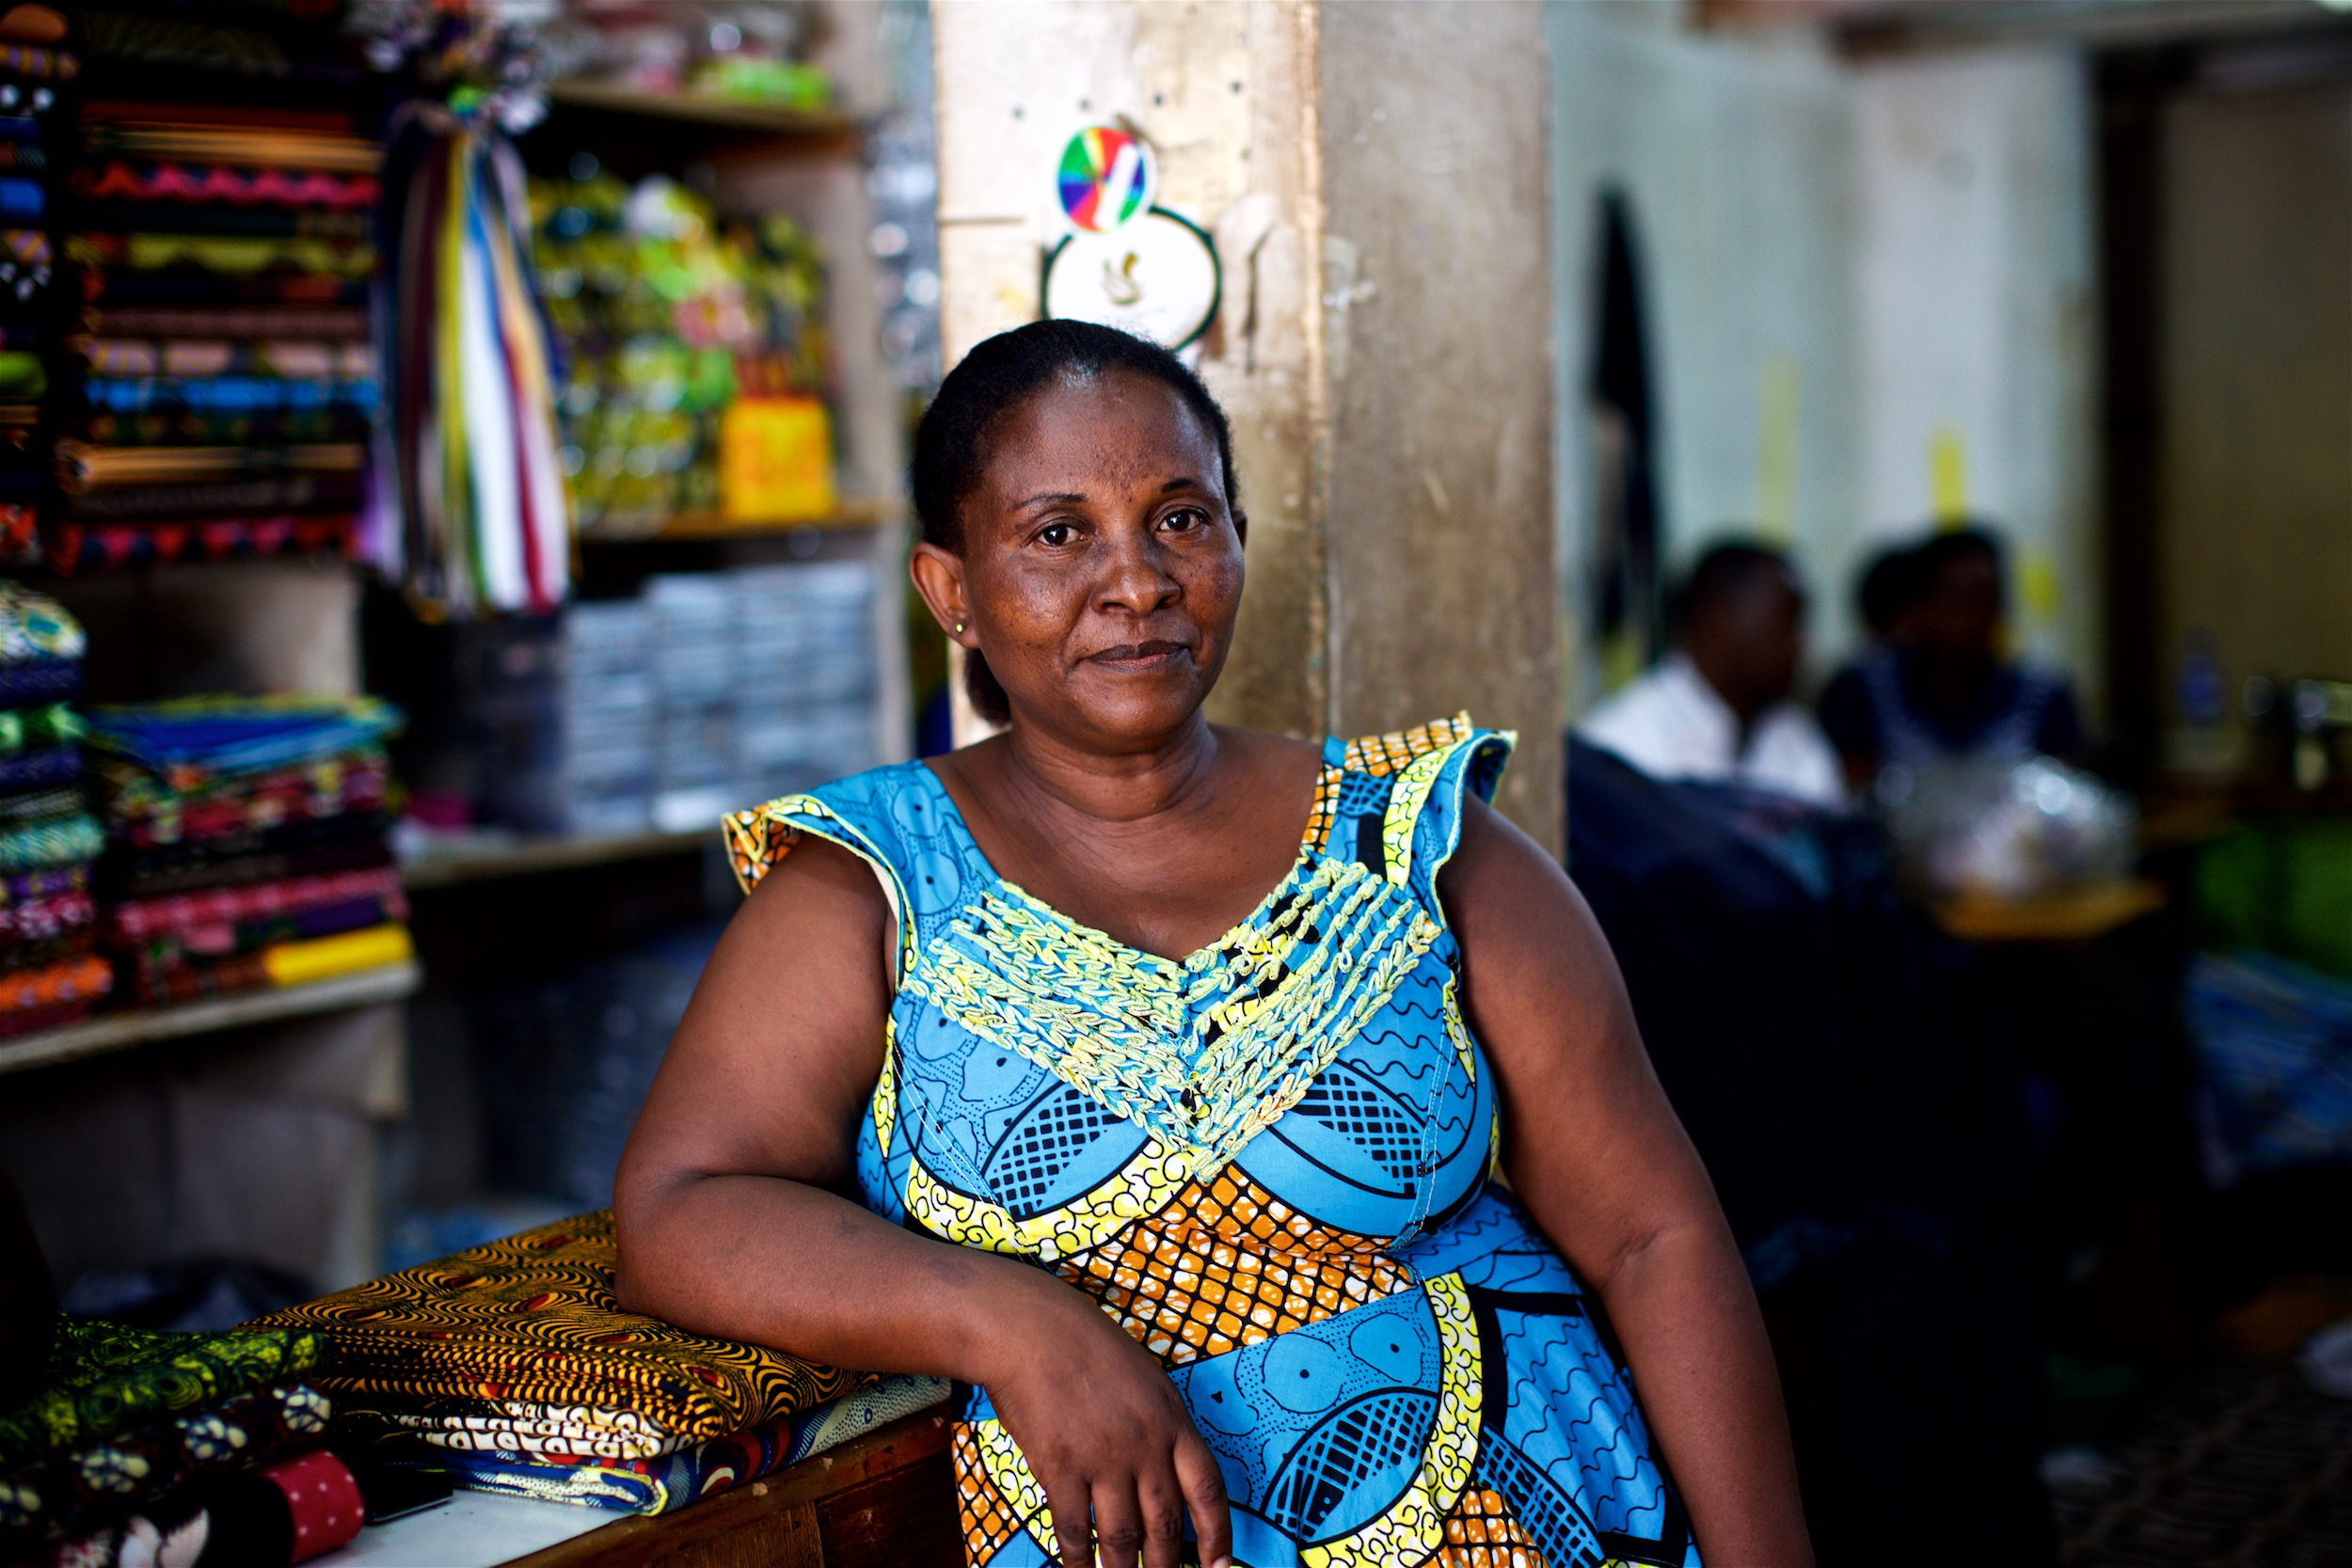 After graduating from JRS business class, Jeannette was granted a small no-interest loan from JRS. She now runs her own business in Kampala, Uganda. (Denis Bosnic/JRS)